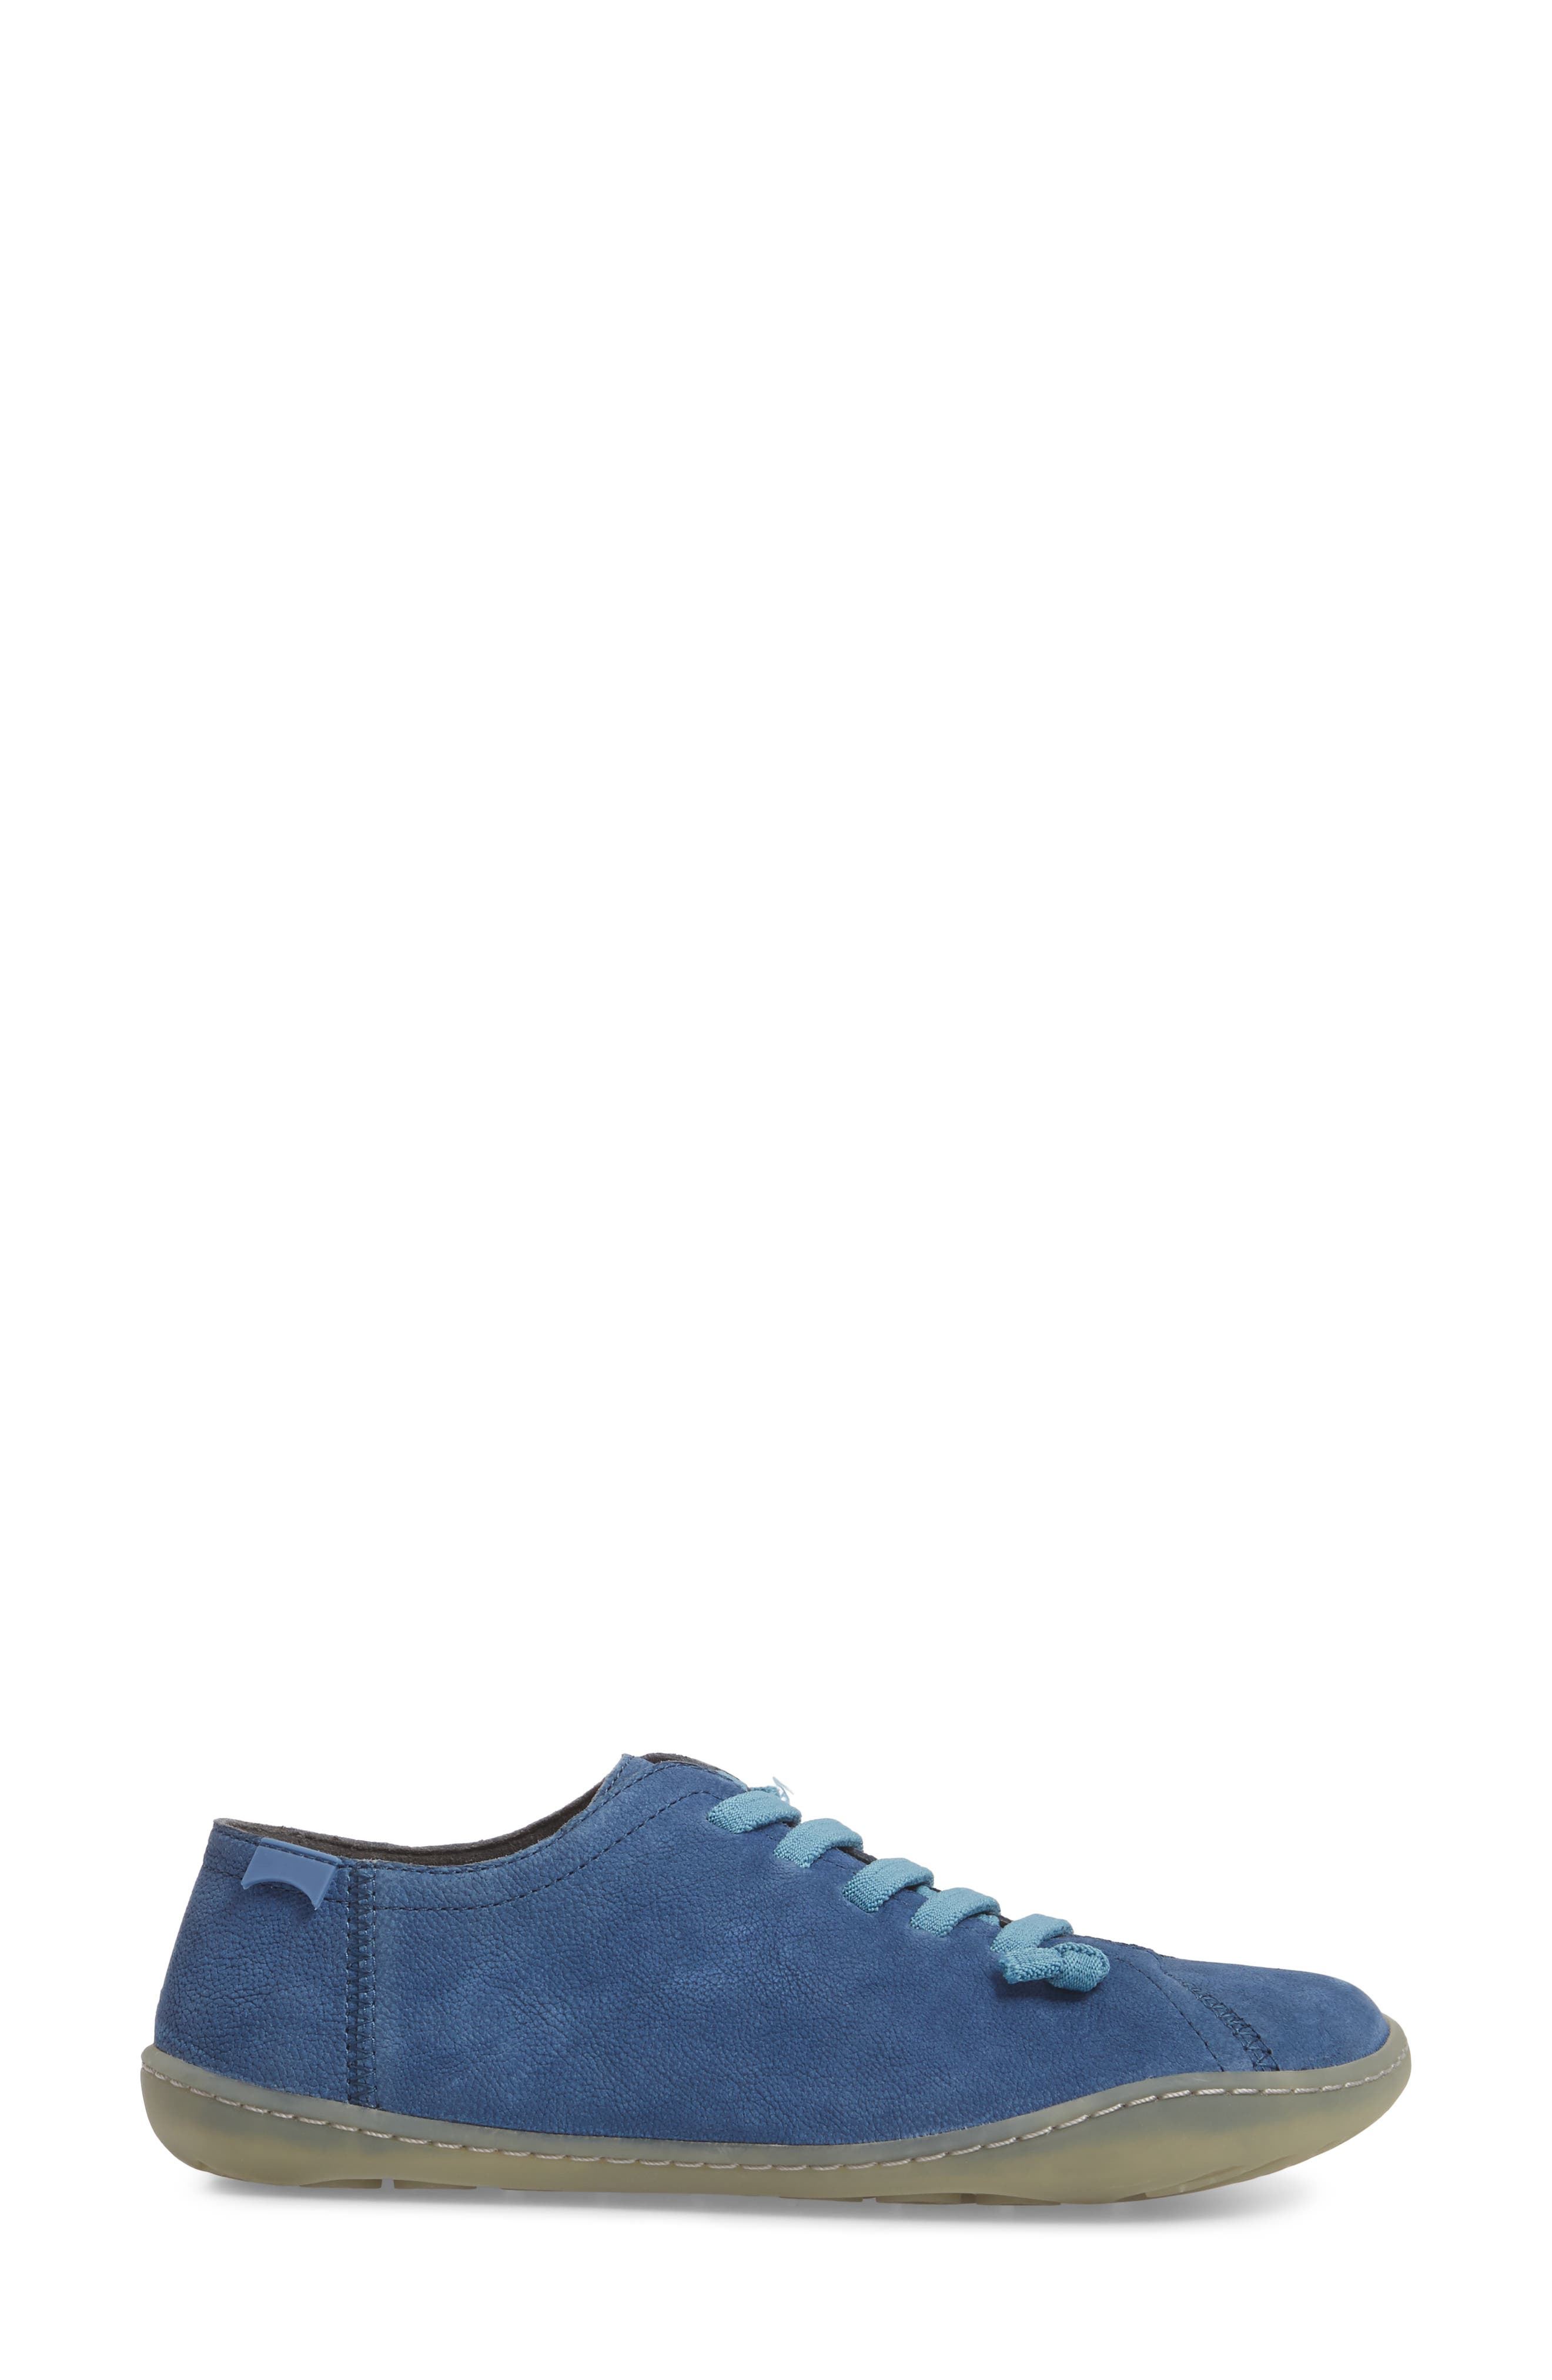 'Peu Cami' Leather Sneaker,                             Alternate thumbnail 3, color,                             Medium Blue Suede